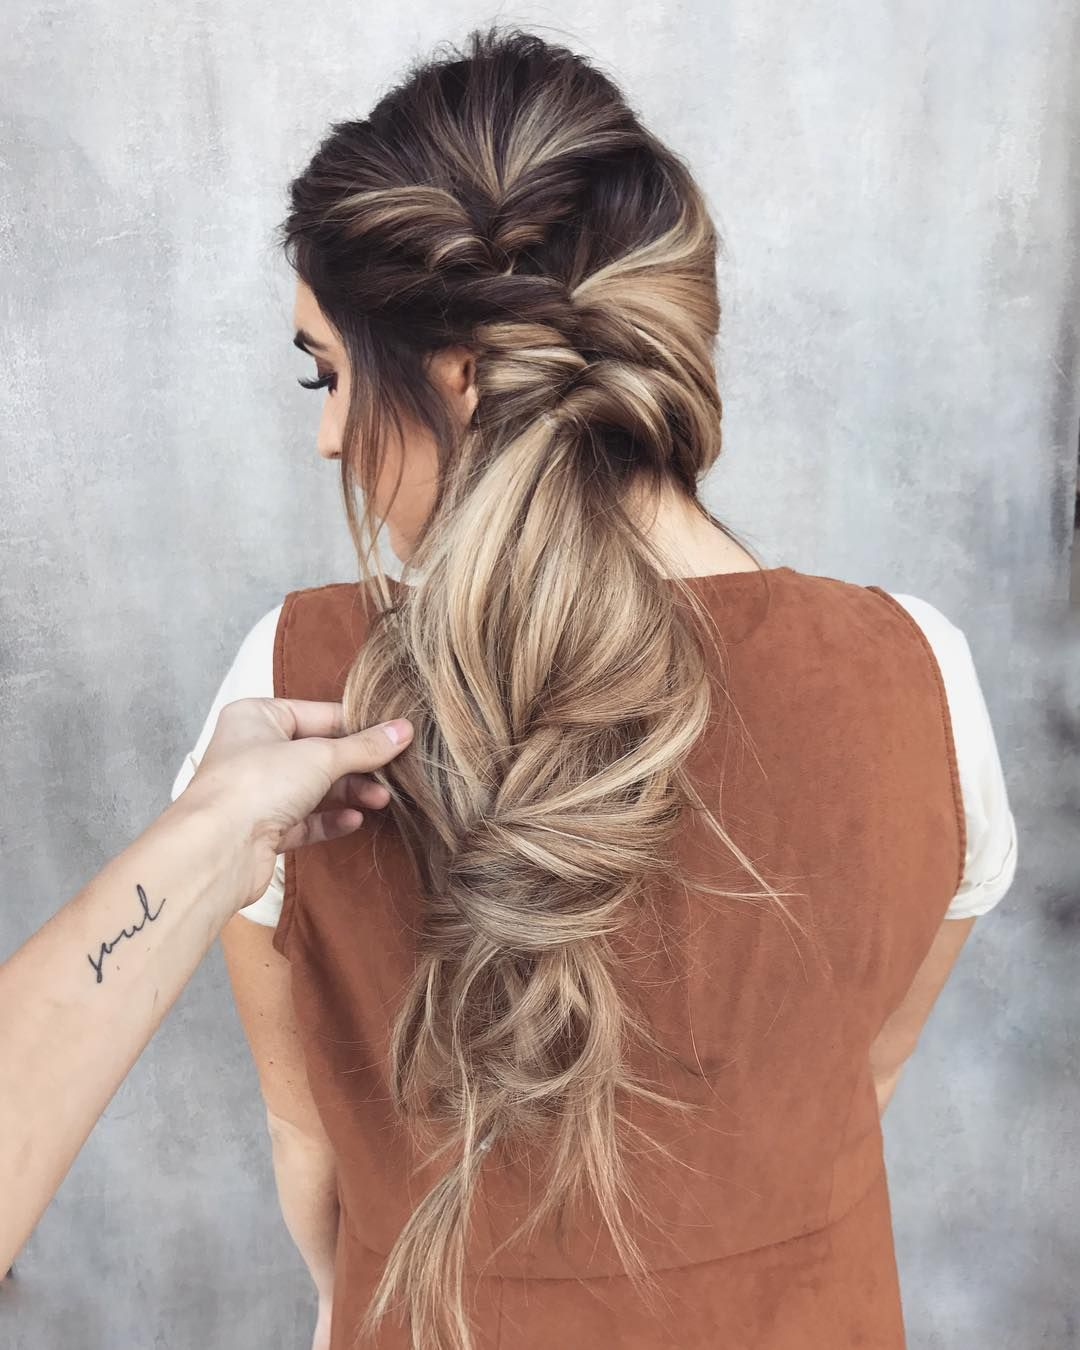 10 messy braided long hairstyle ideas for weddings & vacations